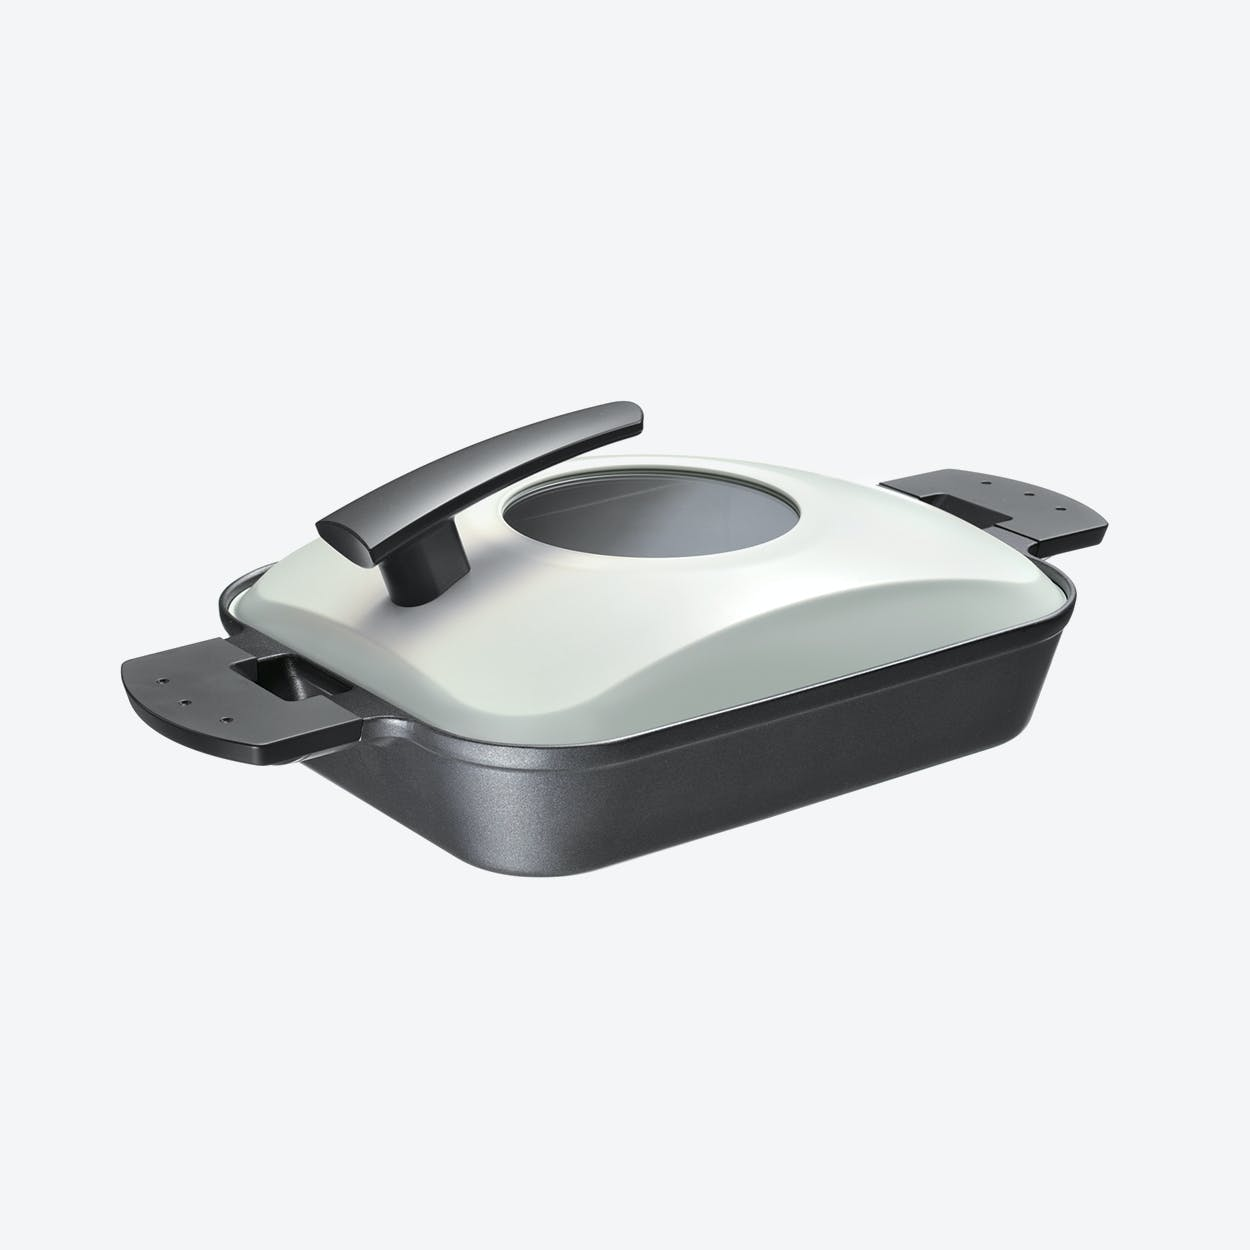 Steam Grill with Metal Cover in Black